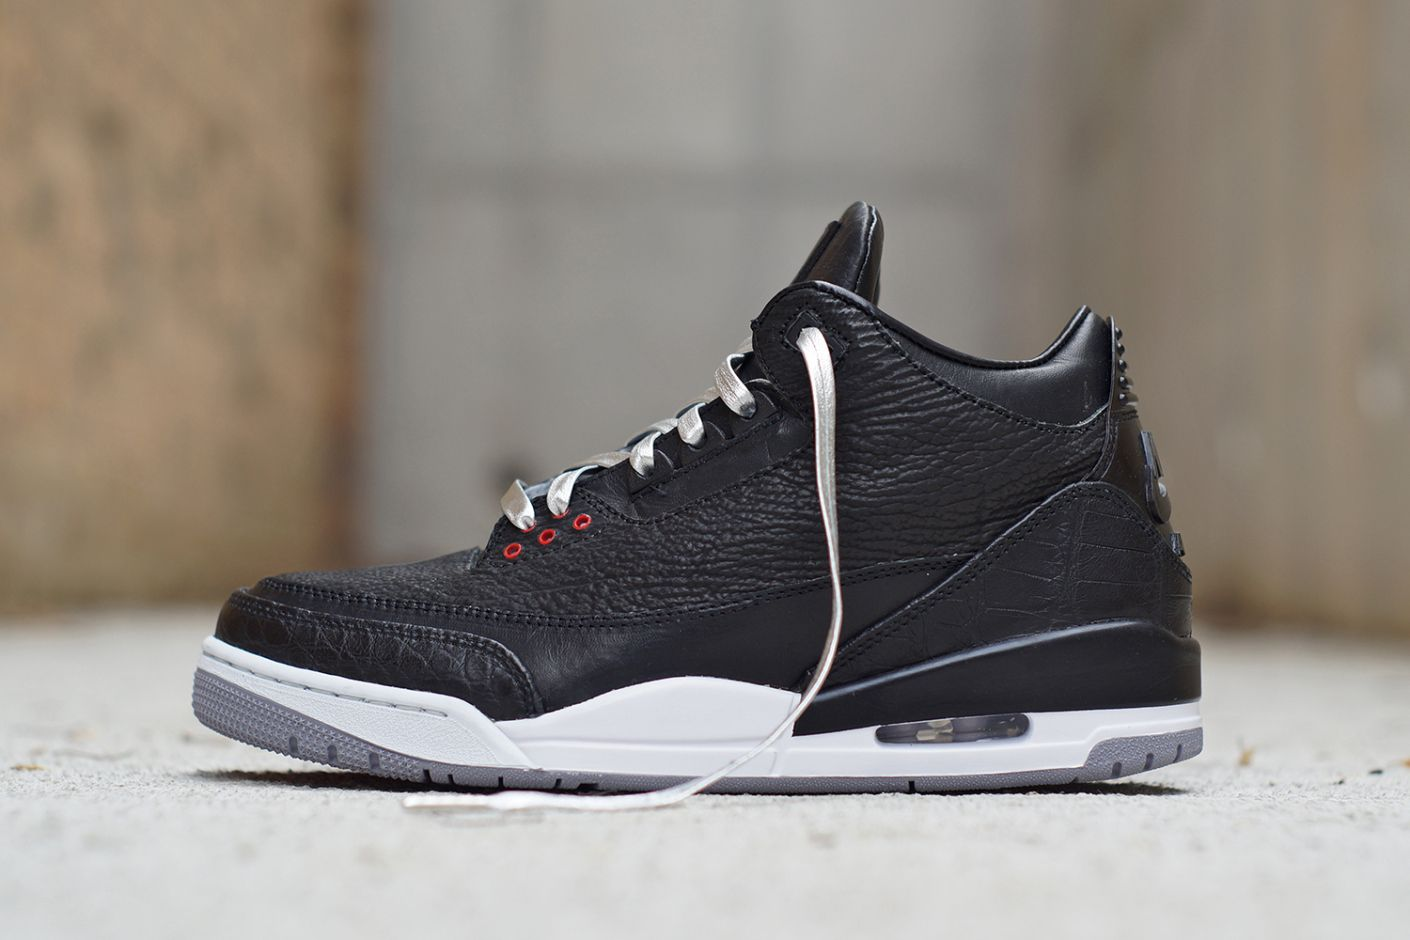 Air Jordan 3 Retro '88 Shark/Alligator/Kangaroo by JBF